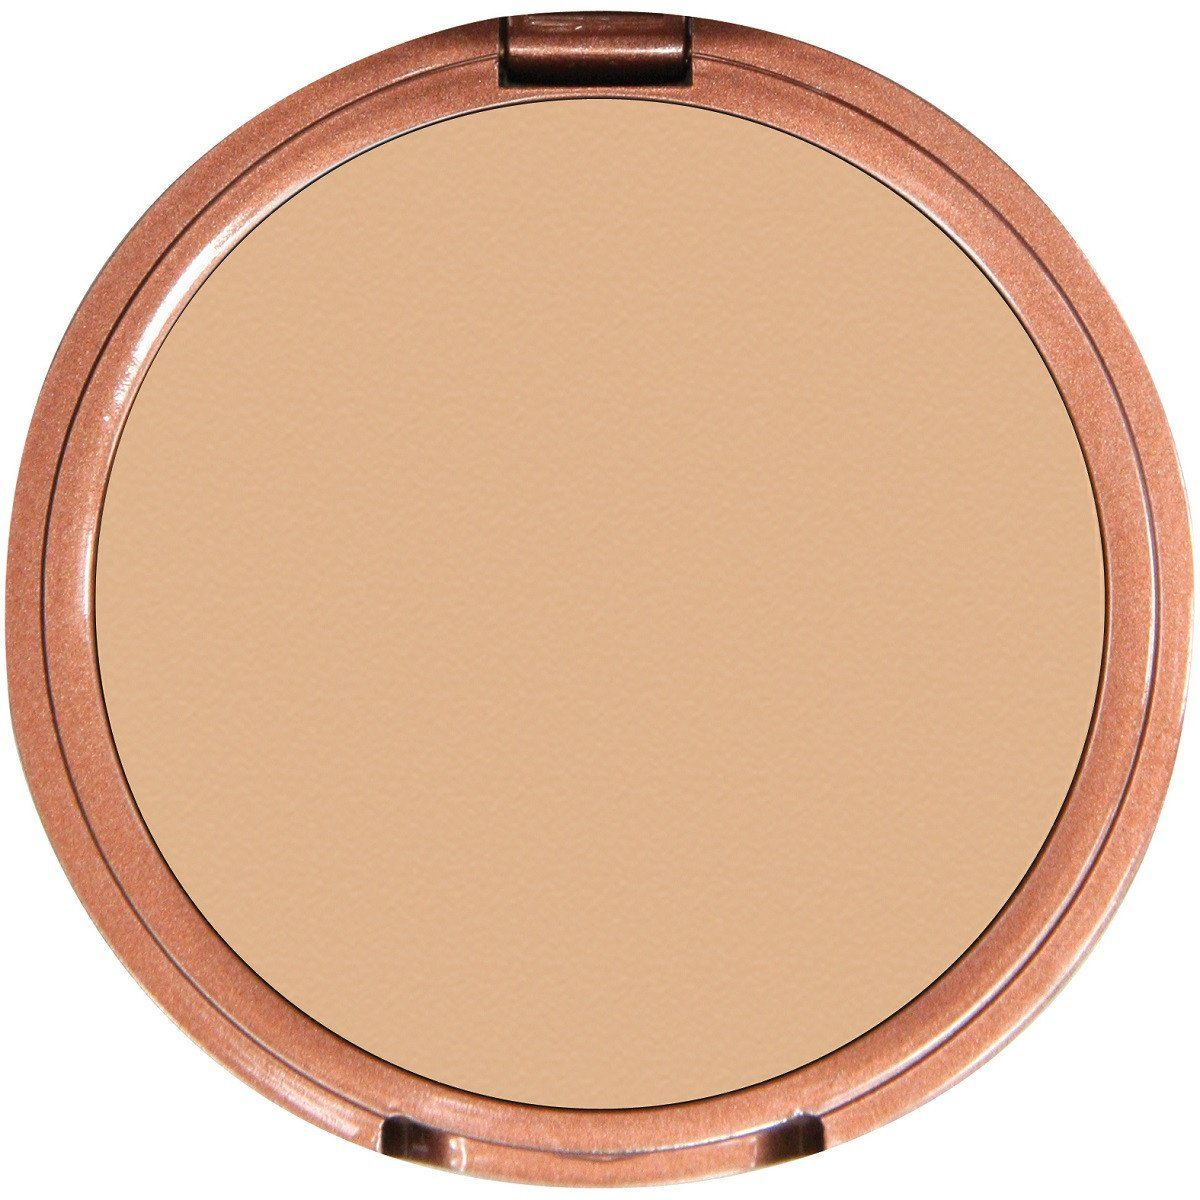 Beauty & Skin Care - Mineral Fusion - Pressed Powder Foundation - Warm 3 (for Medium Skin With Neutral Undertones), 9g